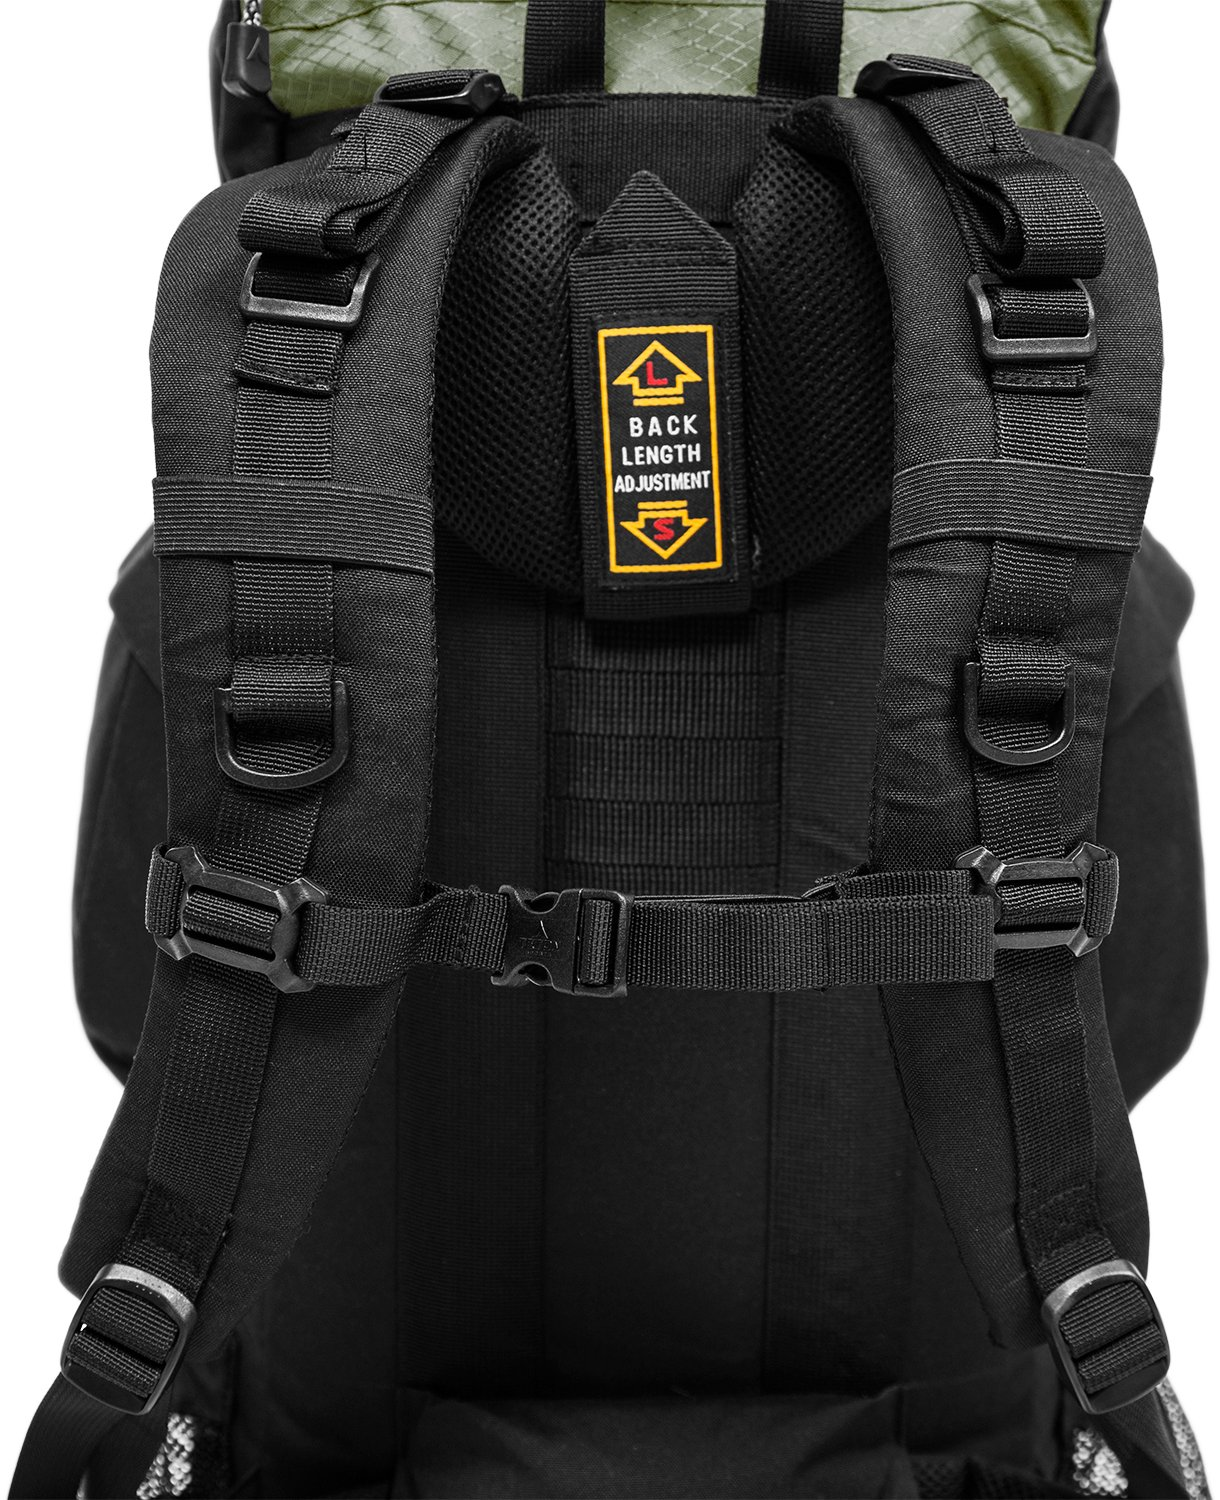 Chest and shoulder straps, TETON Sports Scout 3400 backpack